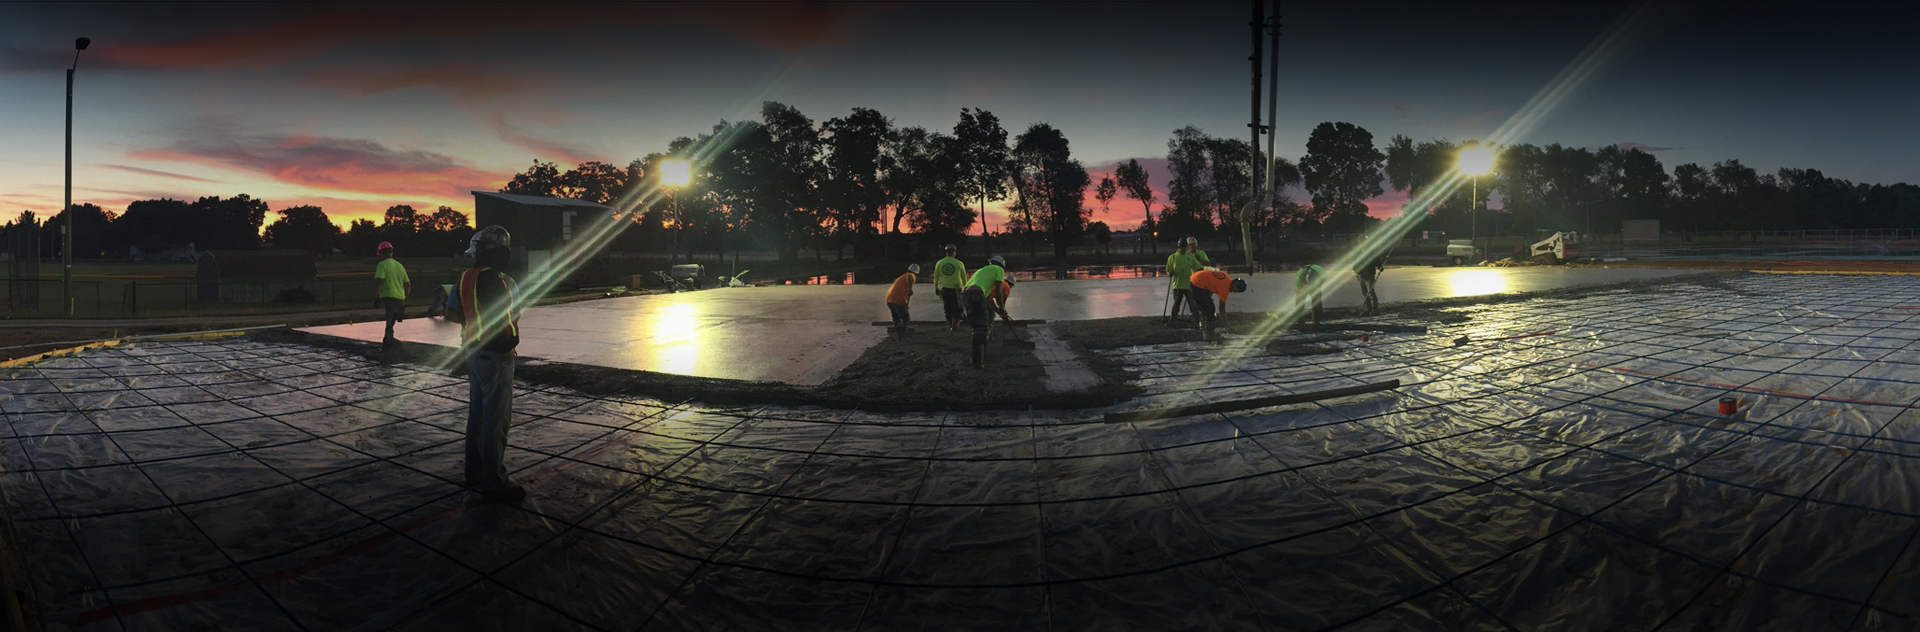 Concrete being poured for tennis courts